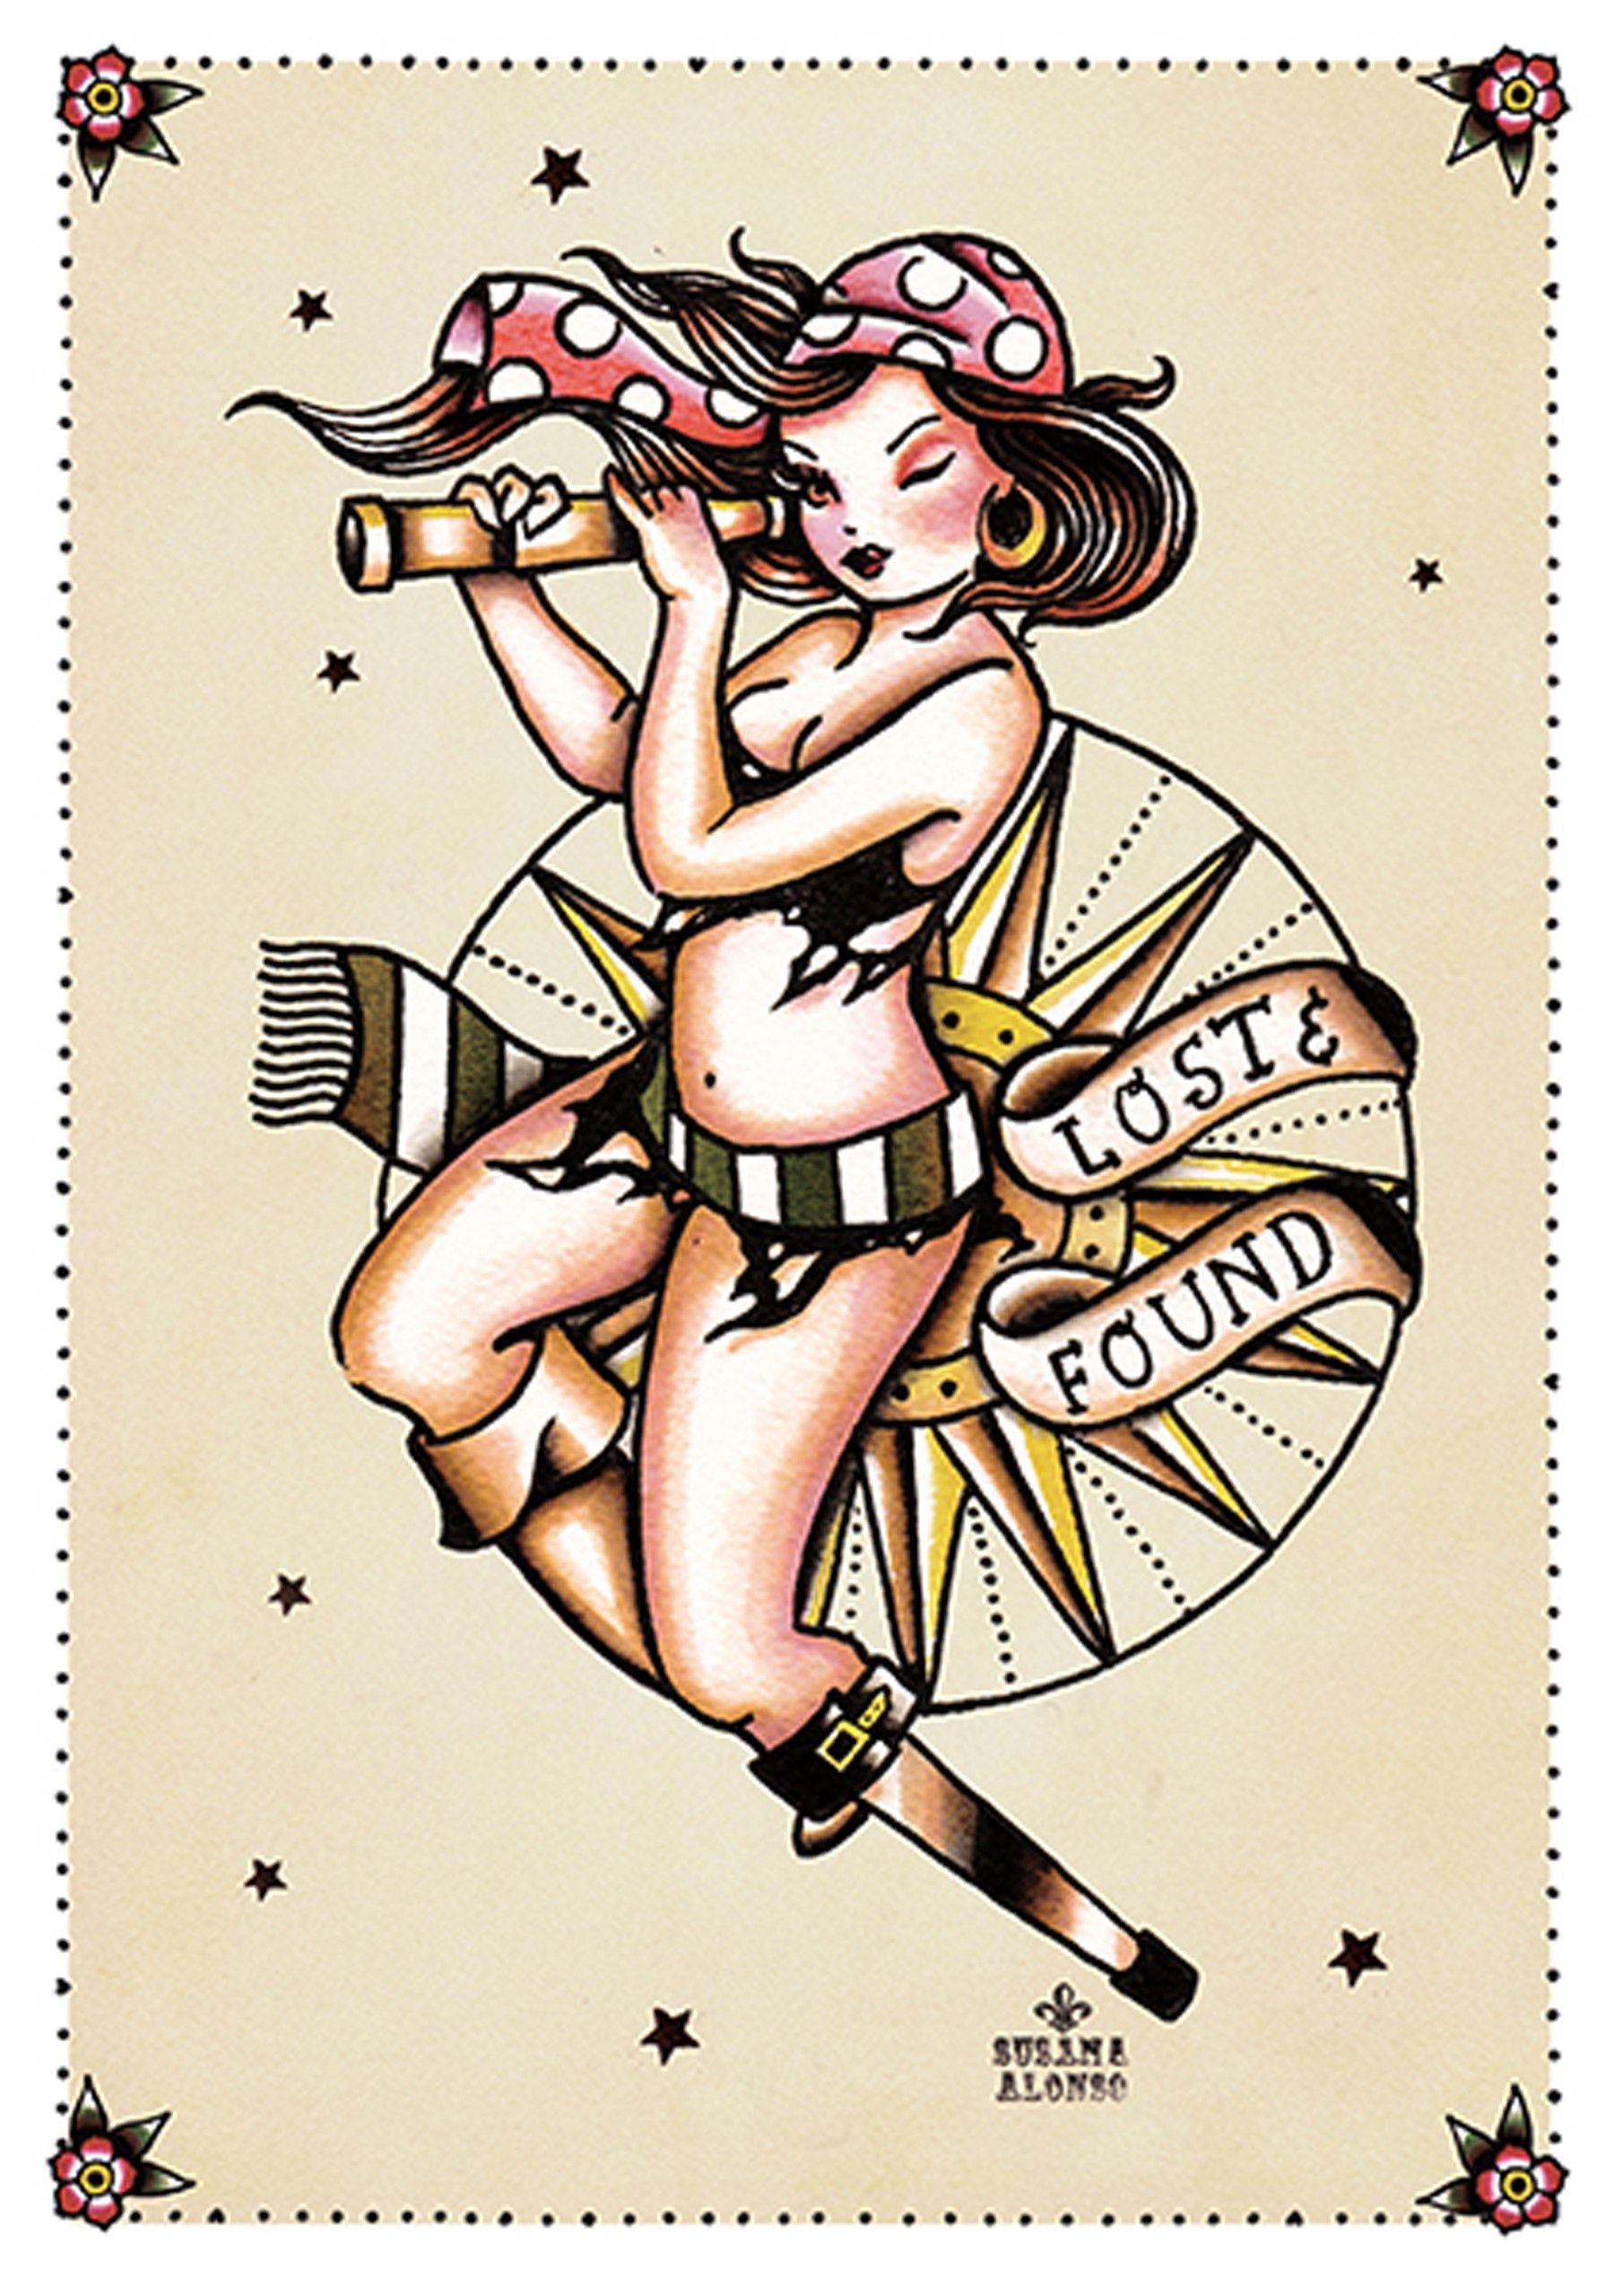 Tattoo old school tatuaggi old school pin up significato e foto quotes - Lost And Found By Susana Alonso Pin Up Girl Tattoo Canvas Art Print